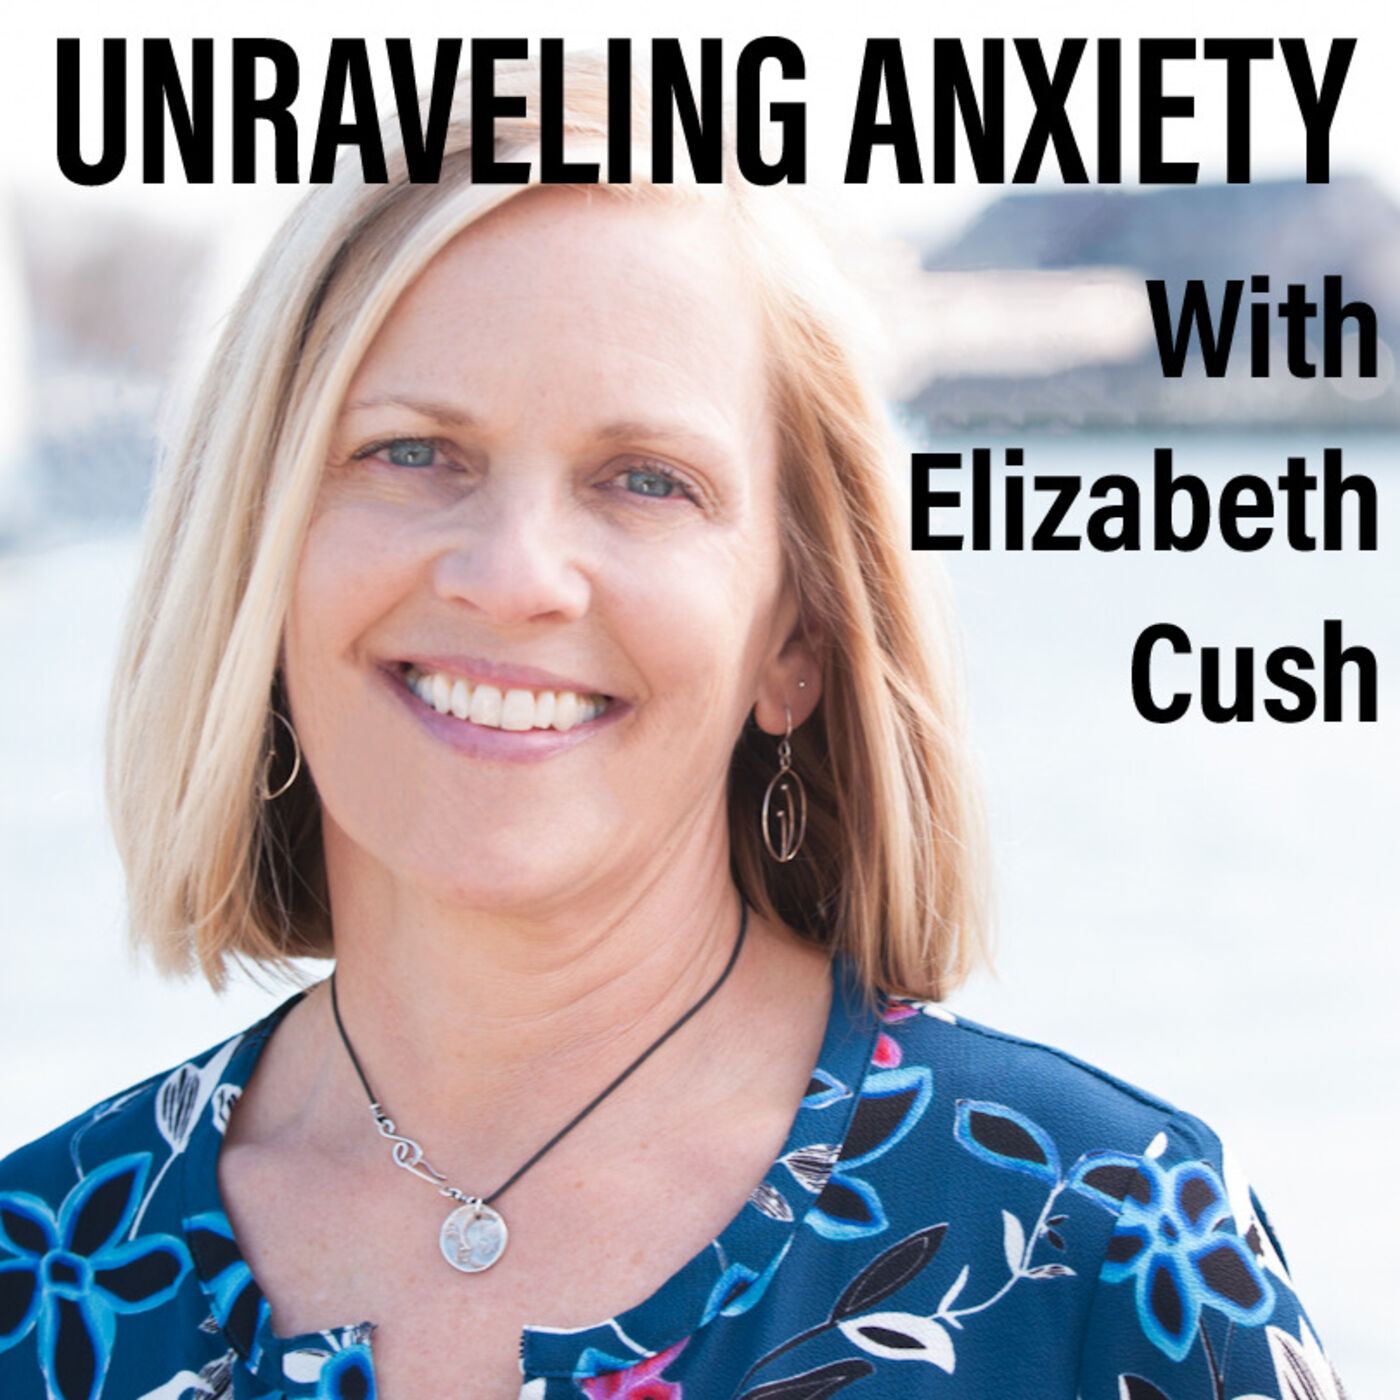 Unraveling Anxiety with Elizabeth Cush